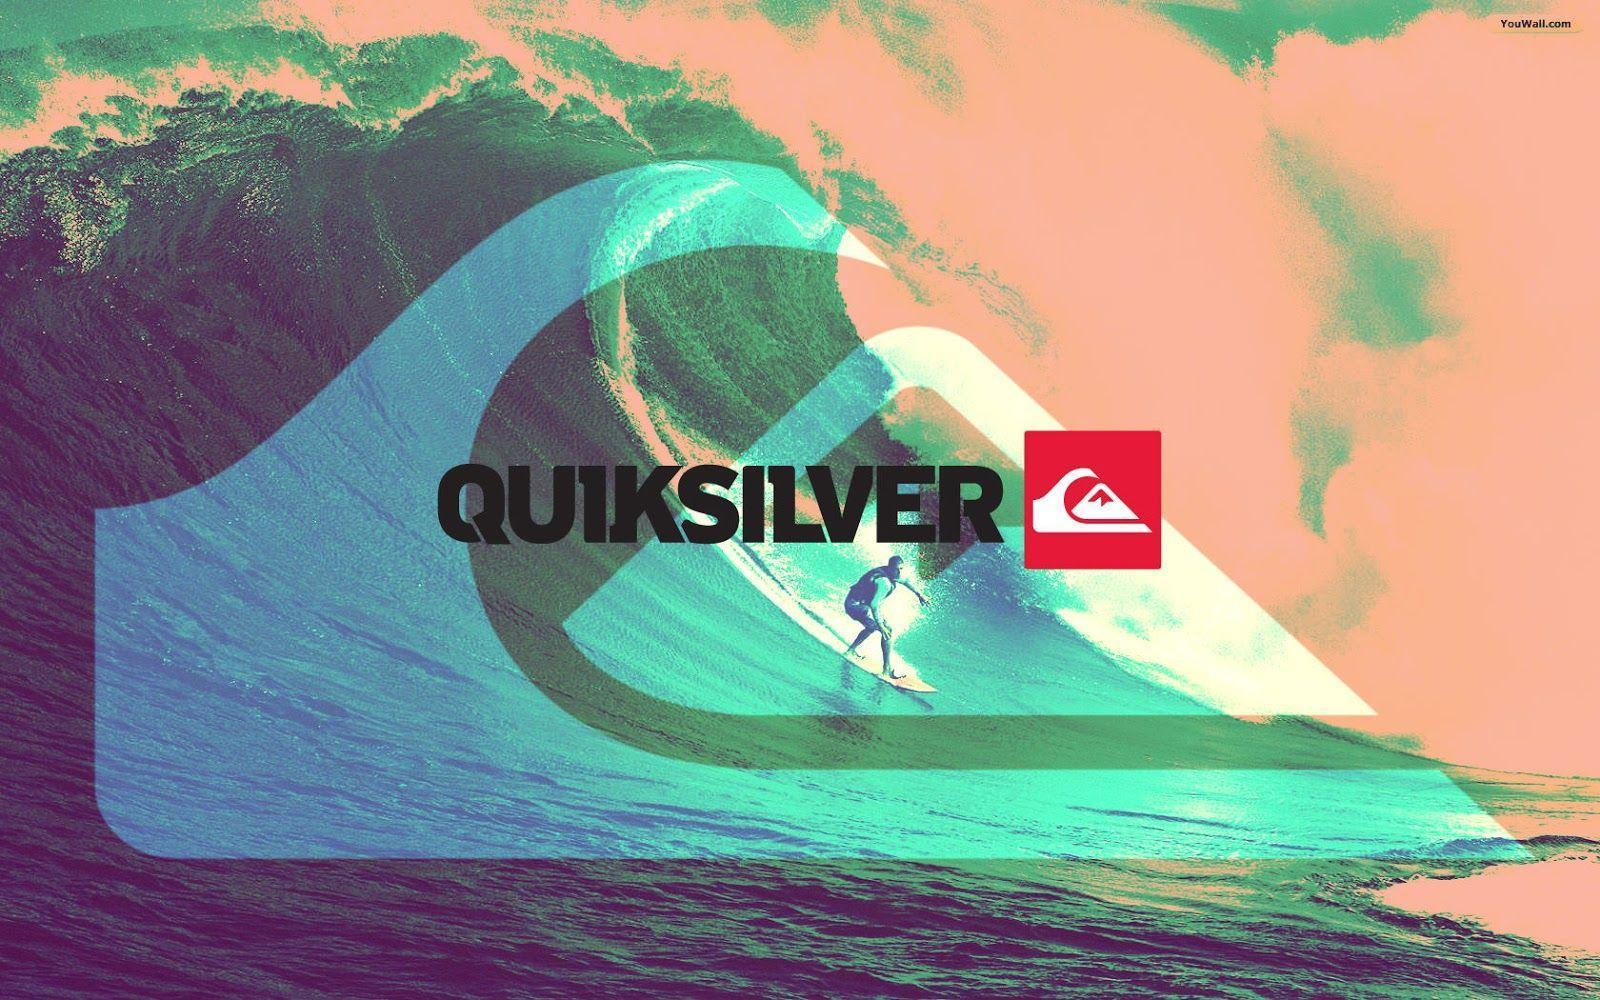 Quiksilver Wallpapers - Wallpaper CaveQuiksilver Wallpaper